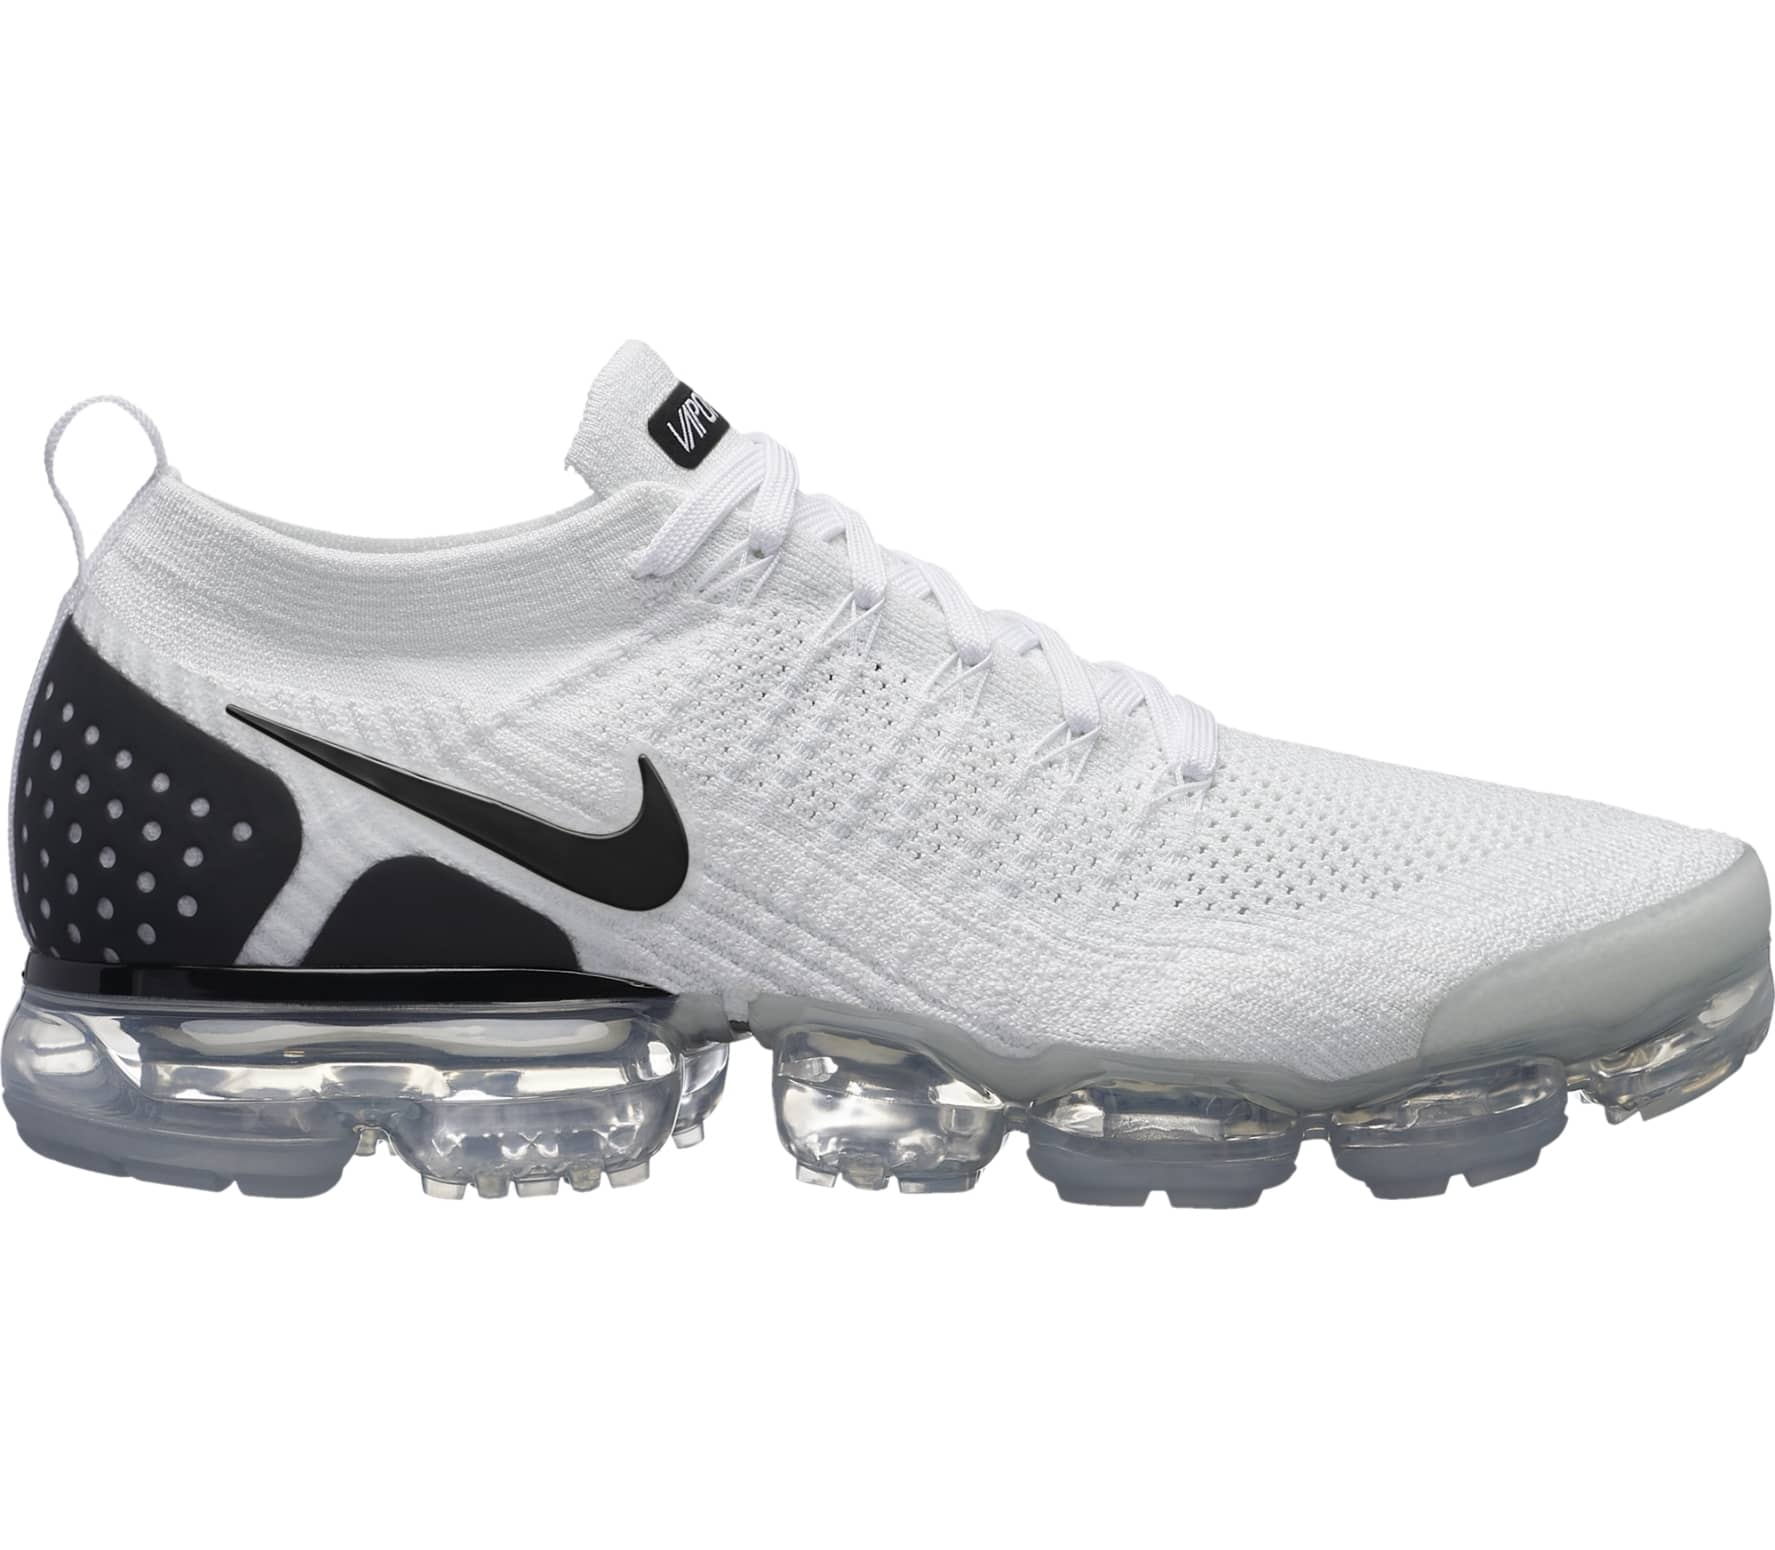 f88cd3a67c0d7 Nike - Air VaporMax Flyknit 2 men s running shoes (white black ...